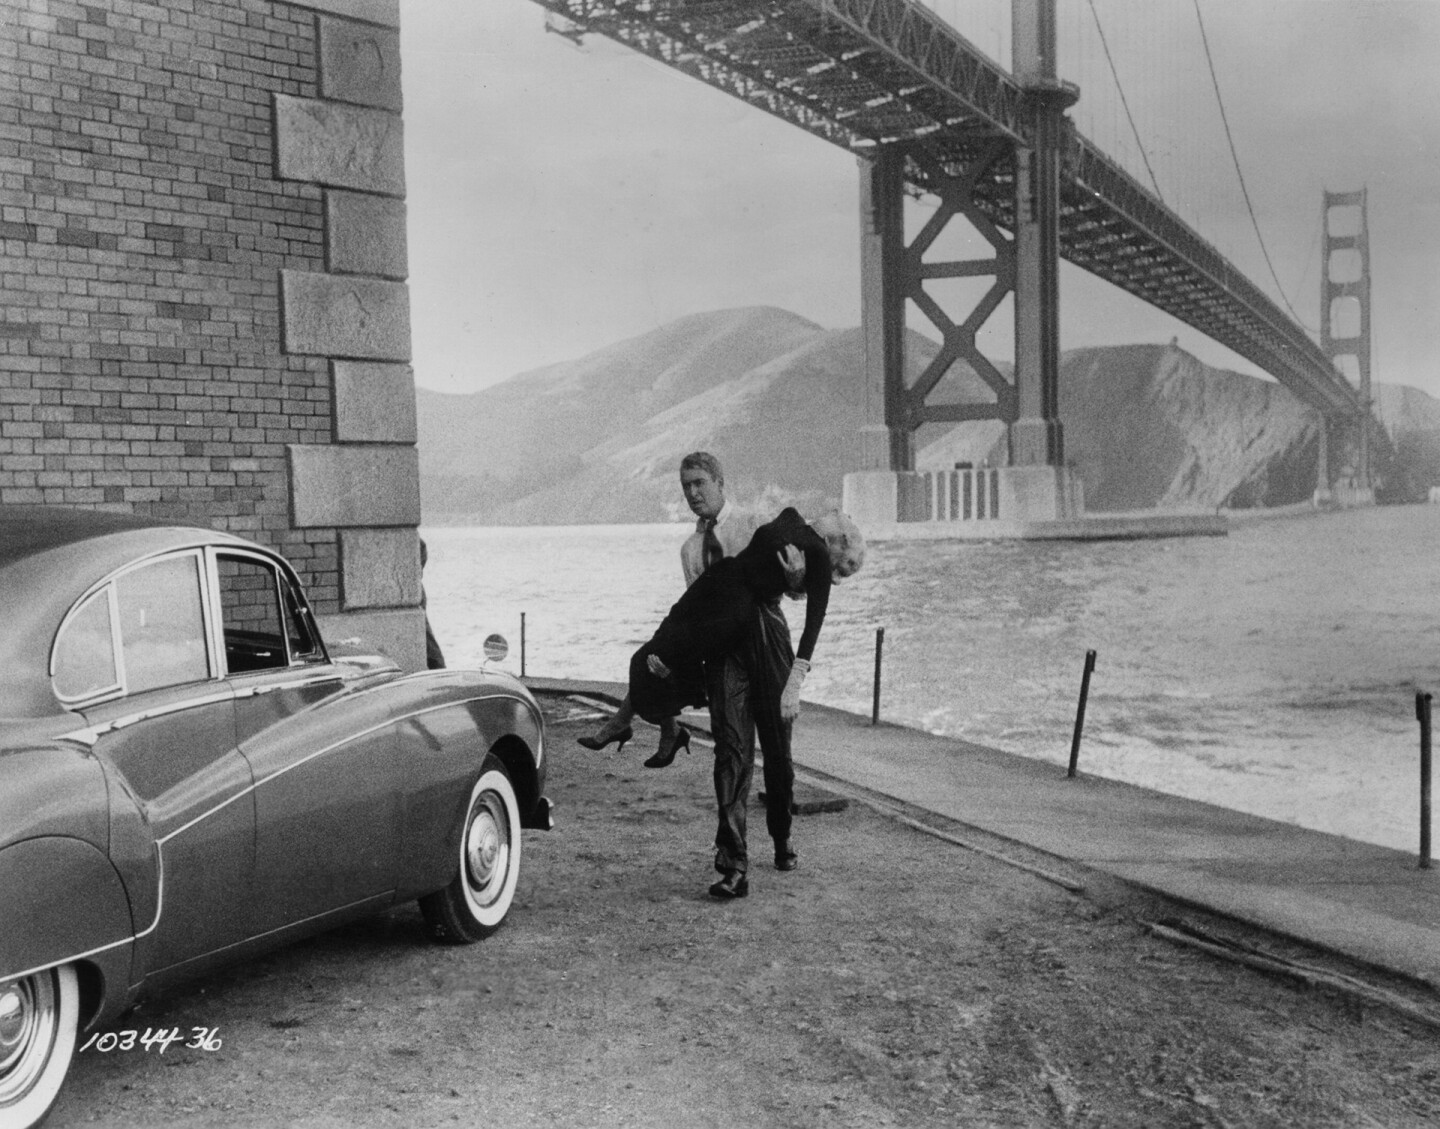 San Francisco's meeting of land and water at Fort Point, location for Alfred Hitchcock's Vertigo (1958). Universal Studios